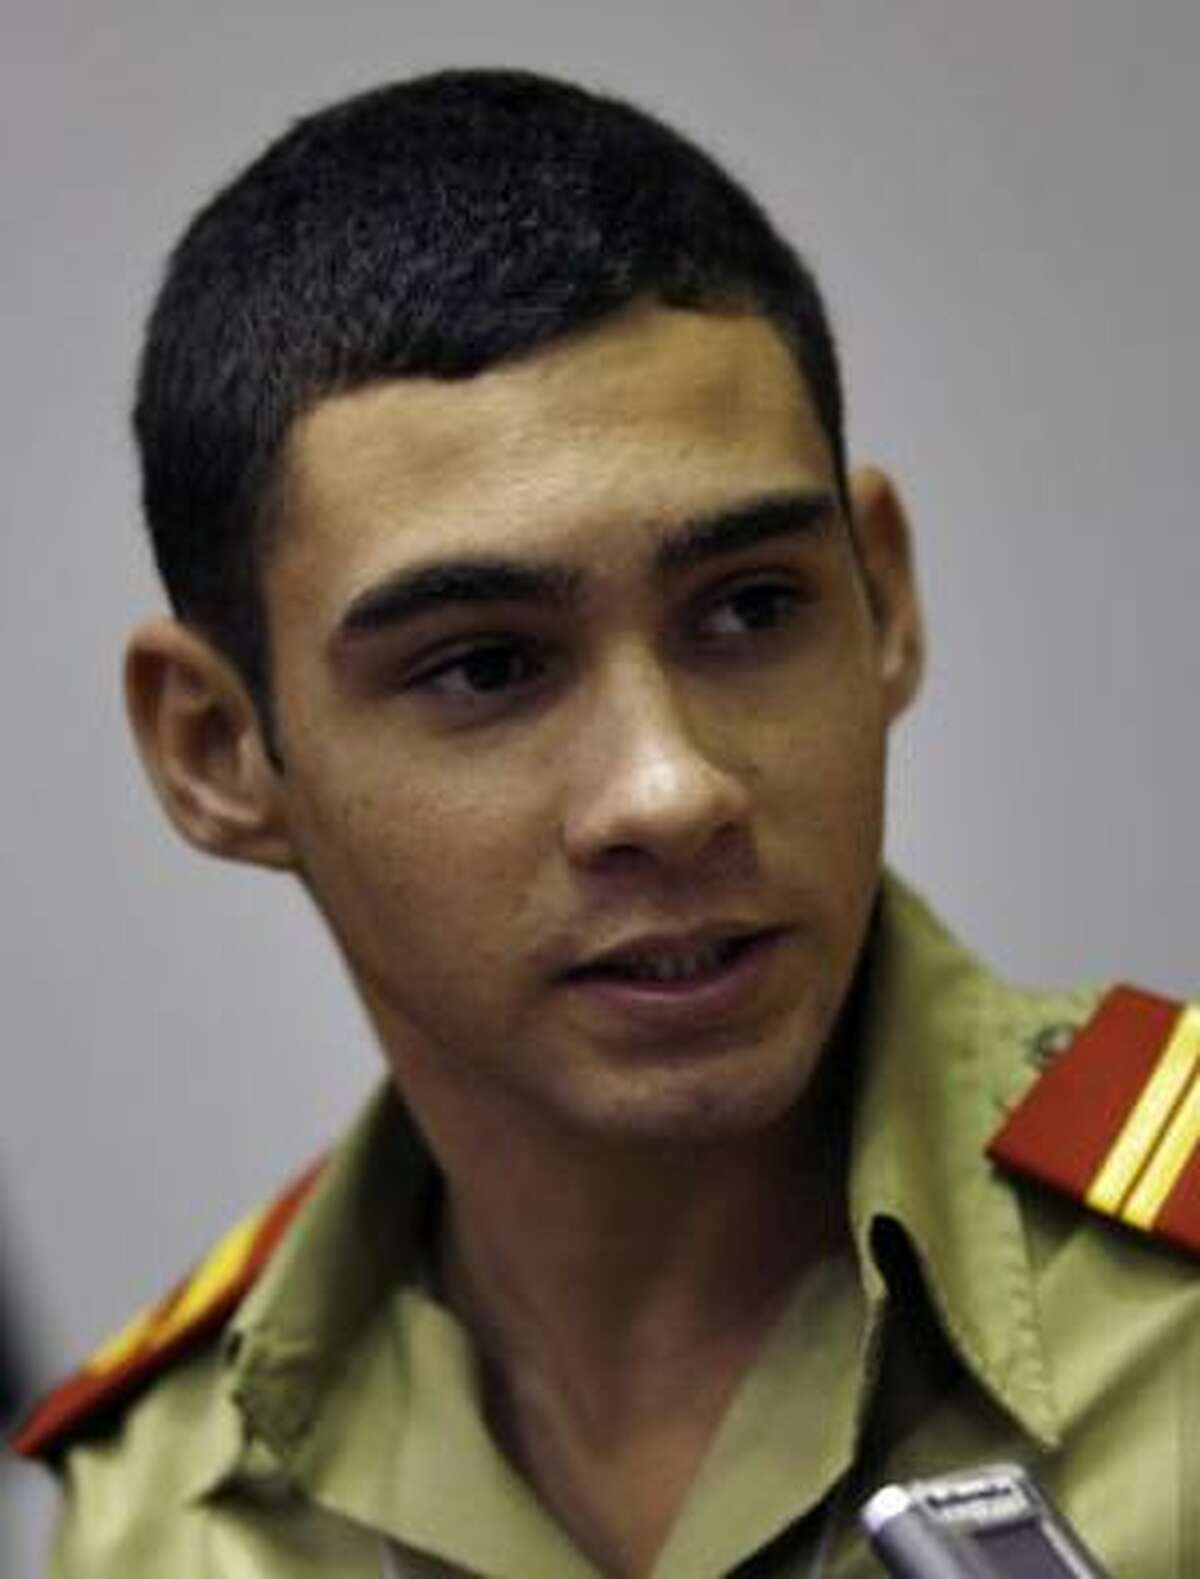 Elian Gonzalez attended the Cuba's Young Communist Union wearing an olive green military school uniform.